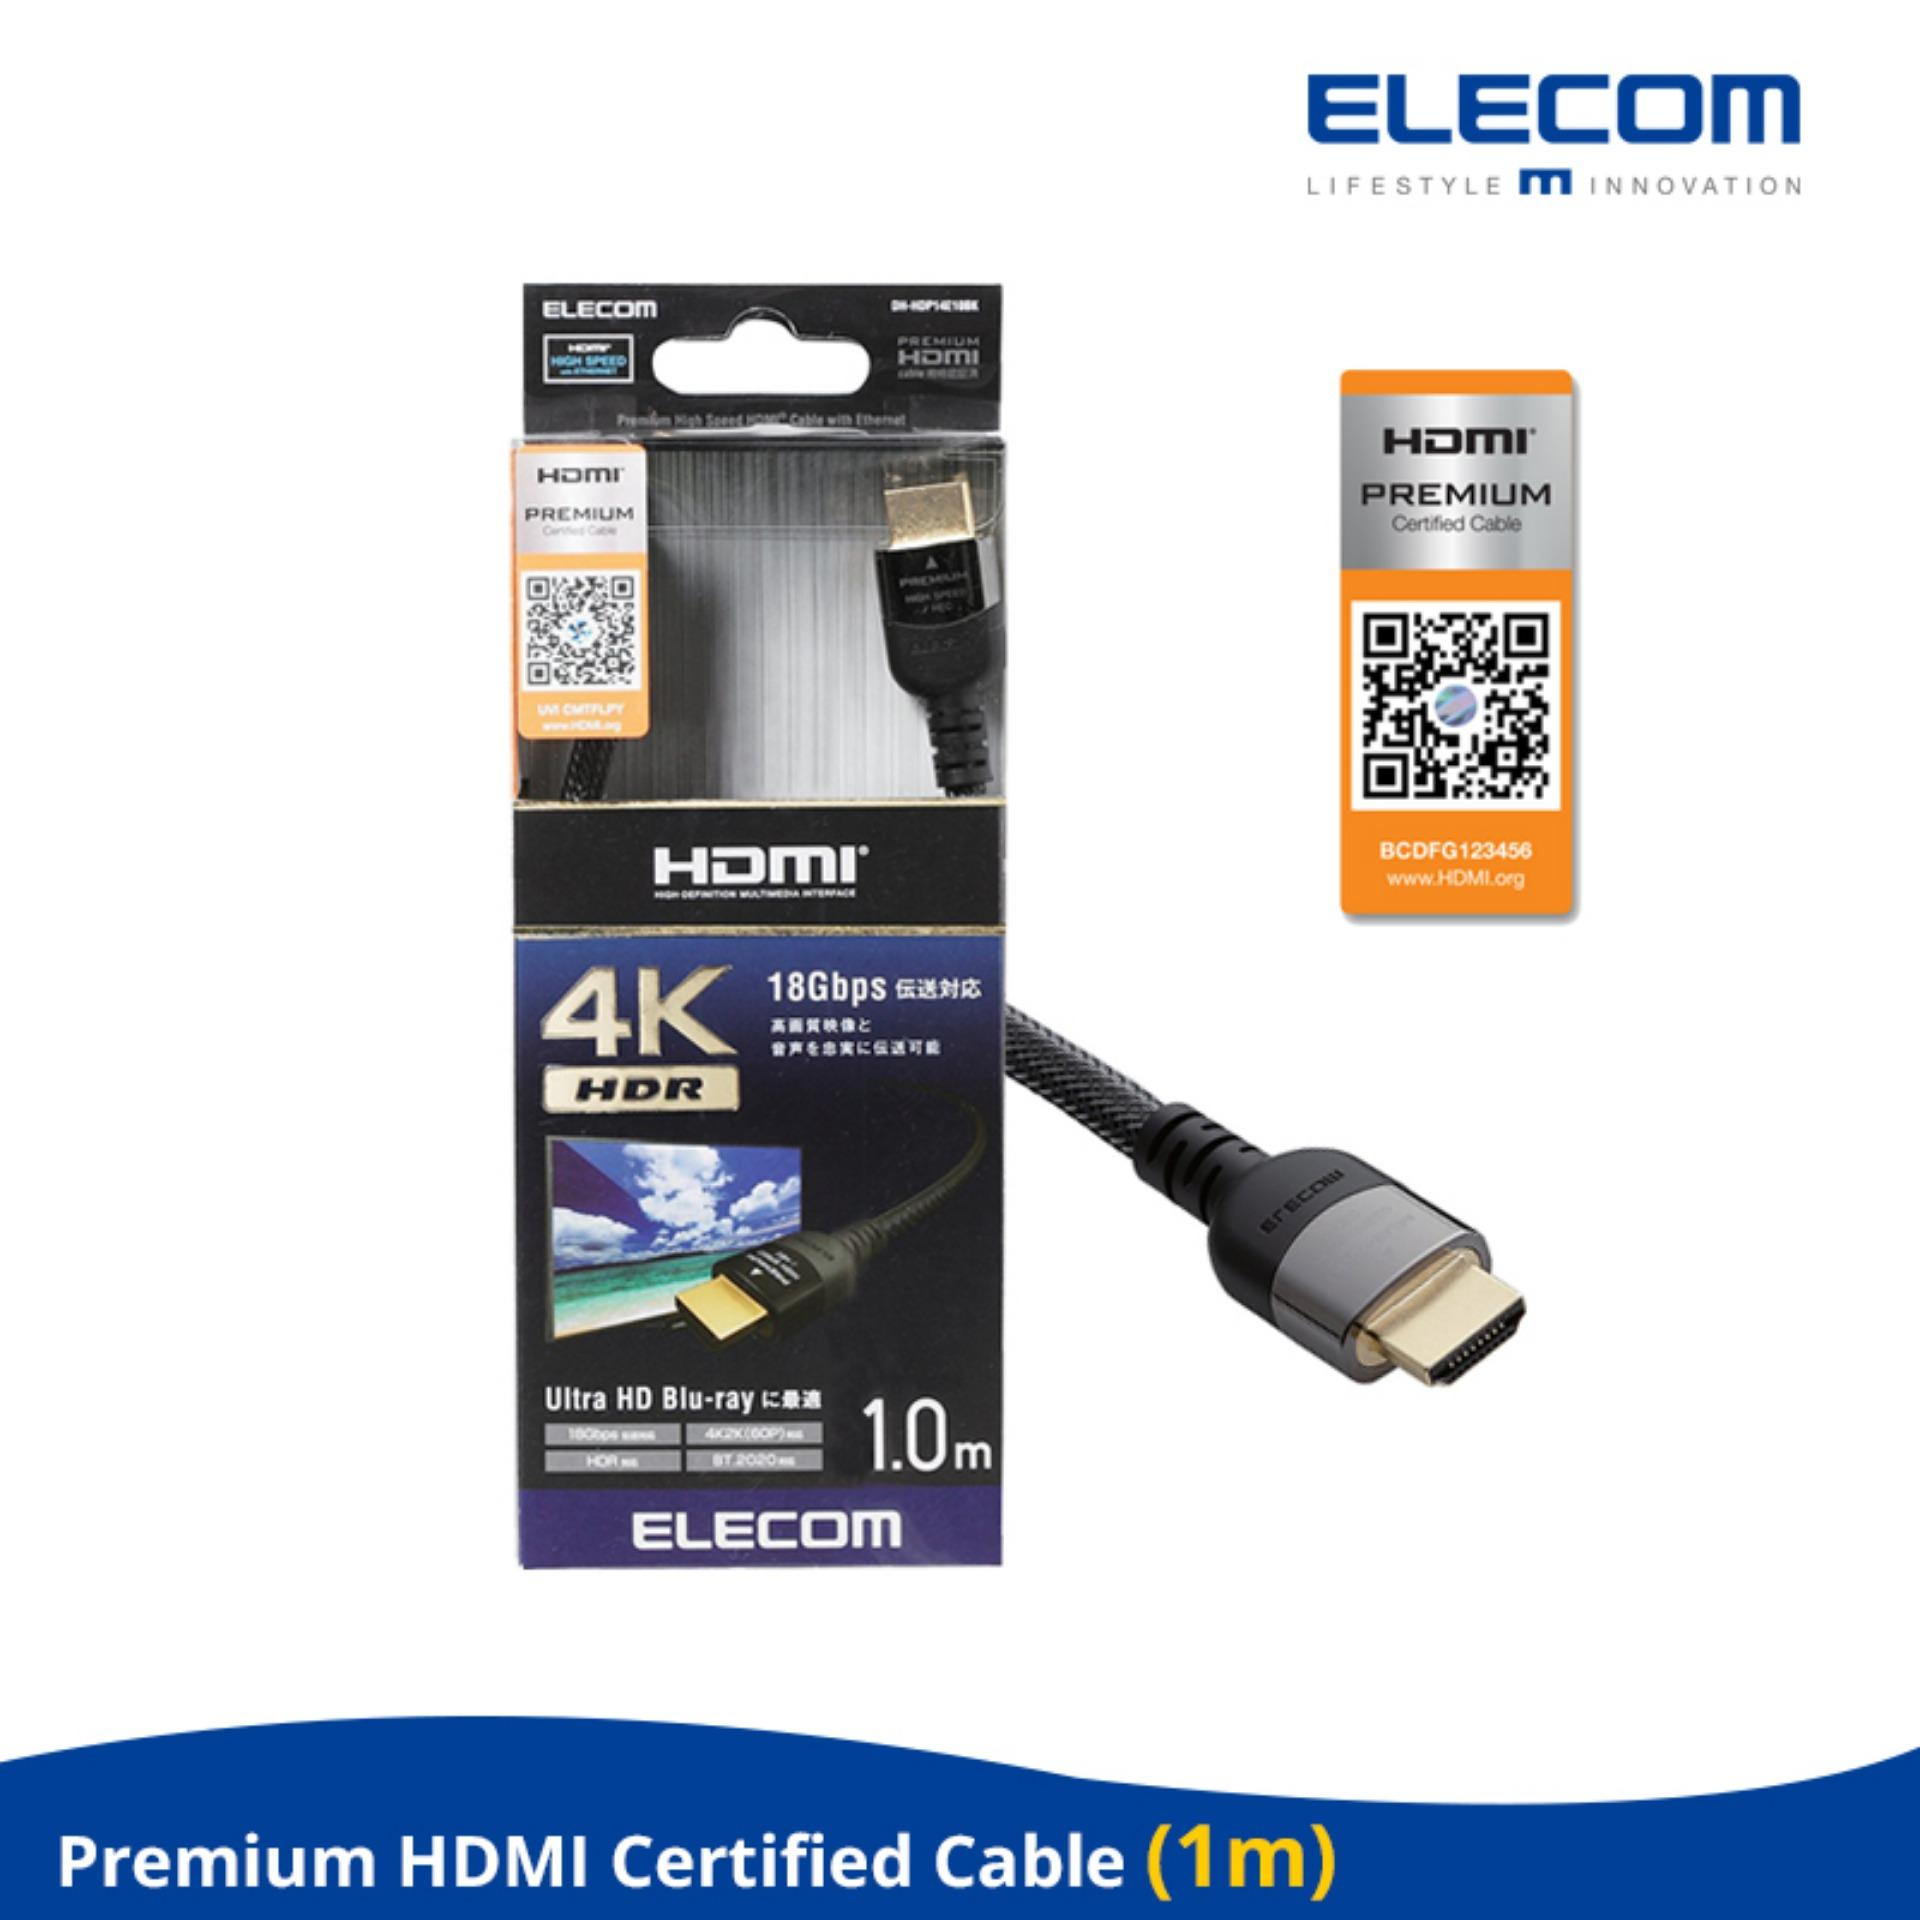 Great Deal Premium Hdmi Certified Cable 18Gbps Transmission Ultra Hd Blu Ray High Grade Model Uhd Tv 4K Ps3 Ps4 Wii Xbox 1M